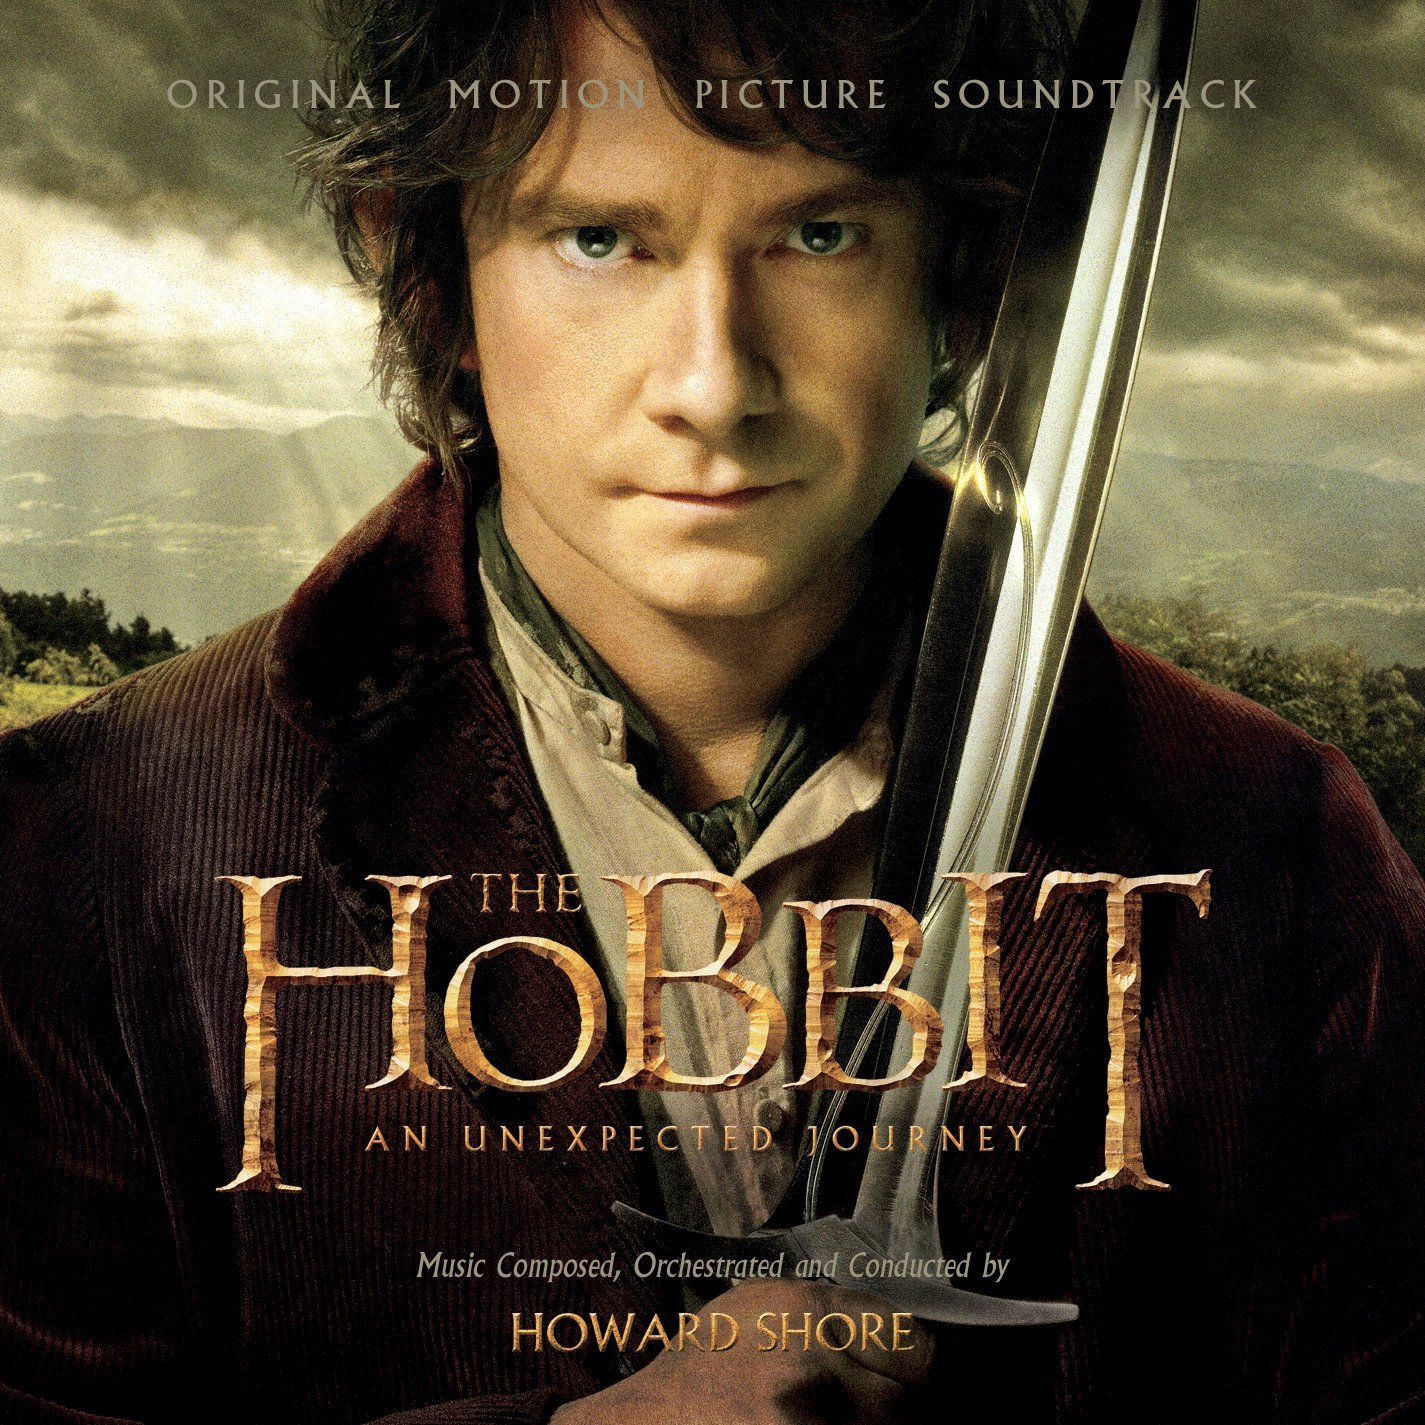 O.S.T. - The Hobbit CD